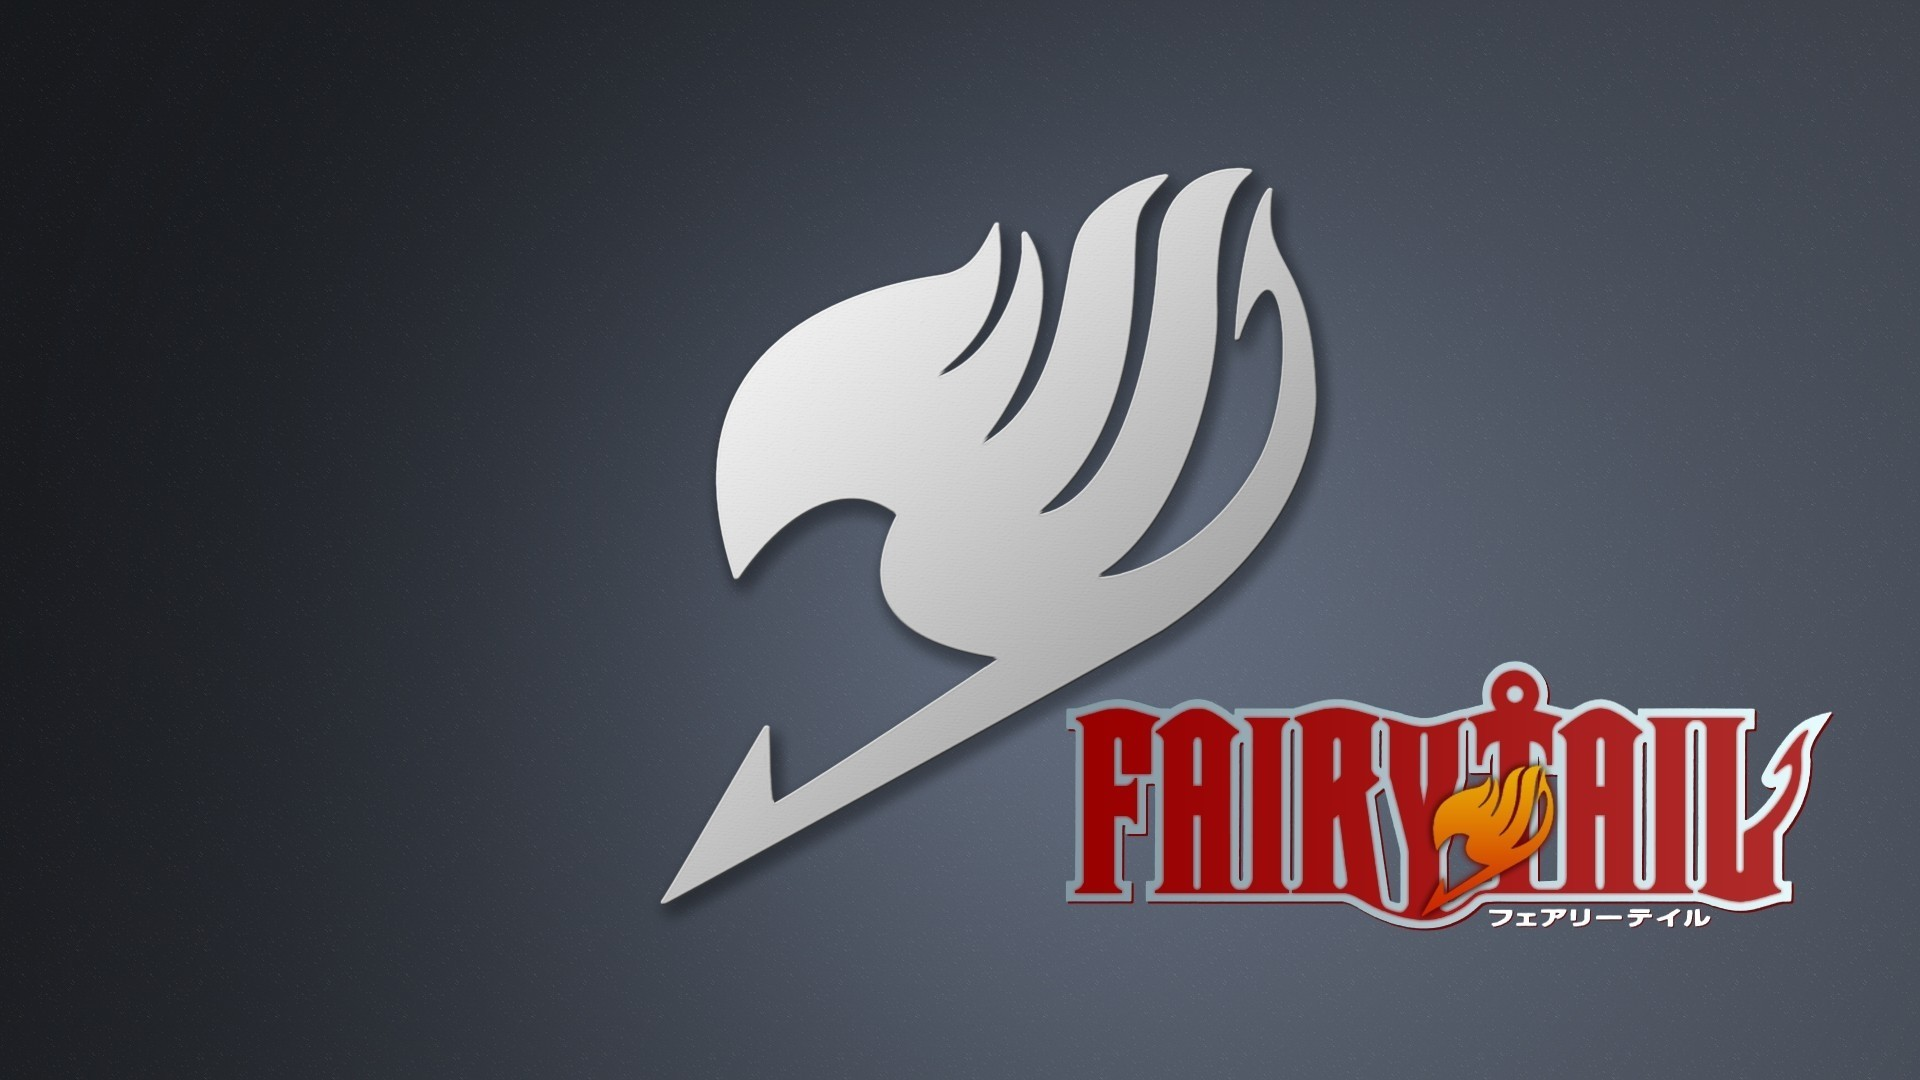 Fairy tail symbol wallpaper 74 images - Fairy tail logo ...